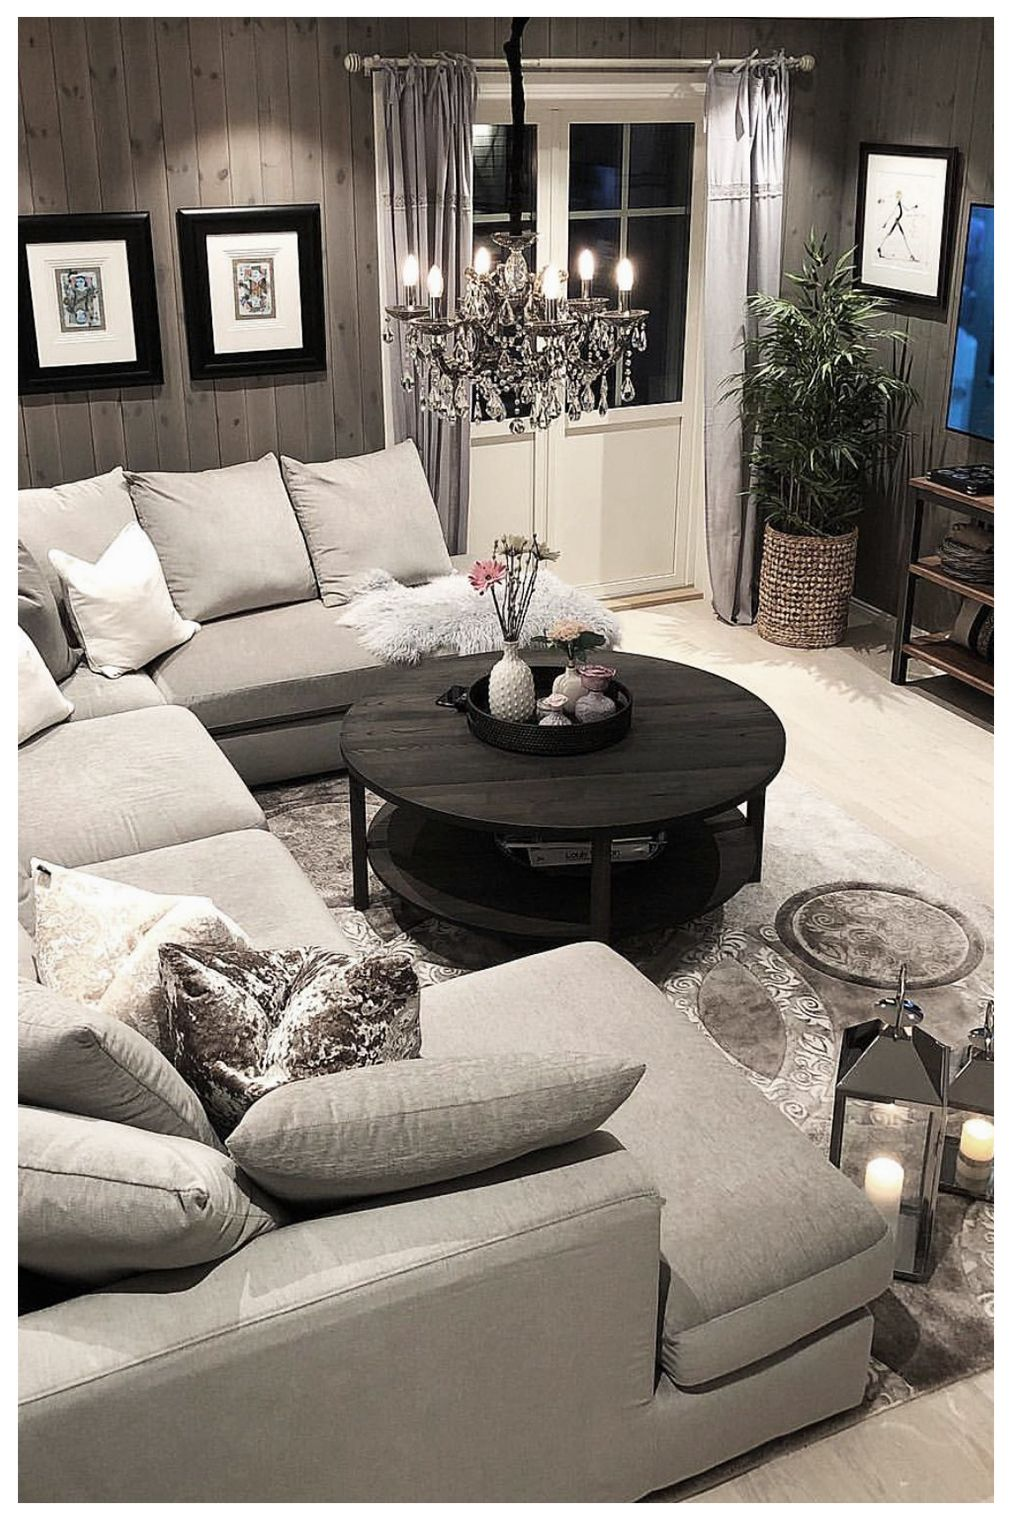 living room remodel 70 amazing ideas in 2020 tips on amazing inspiring modern living room ideas for your home id=56946